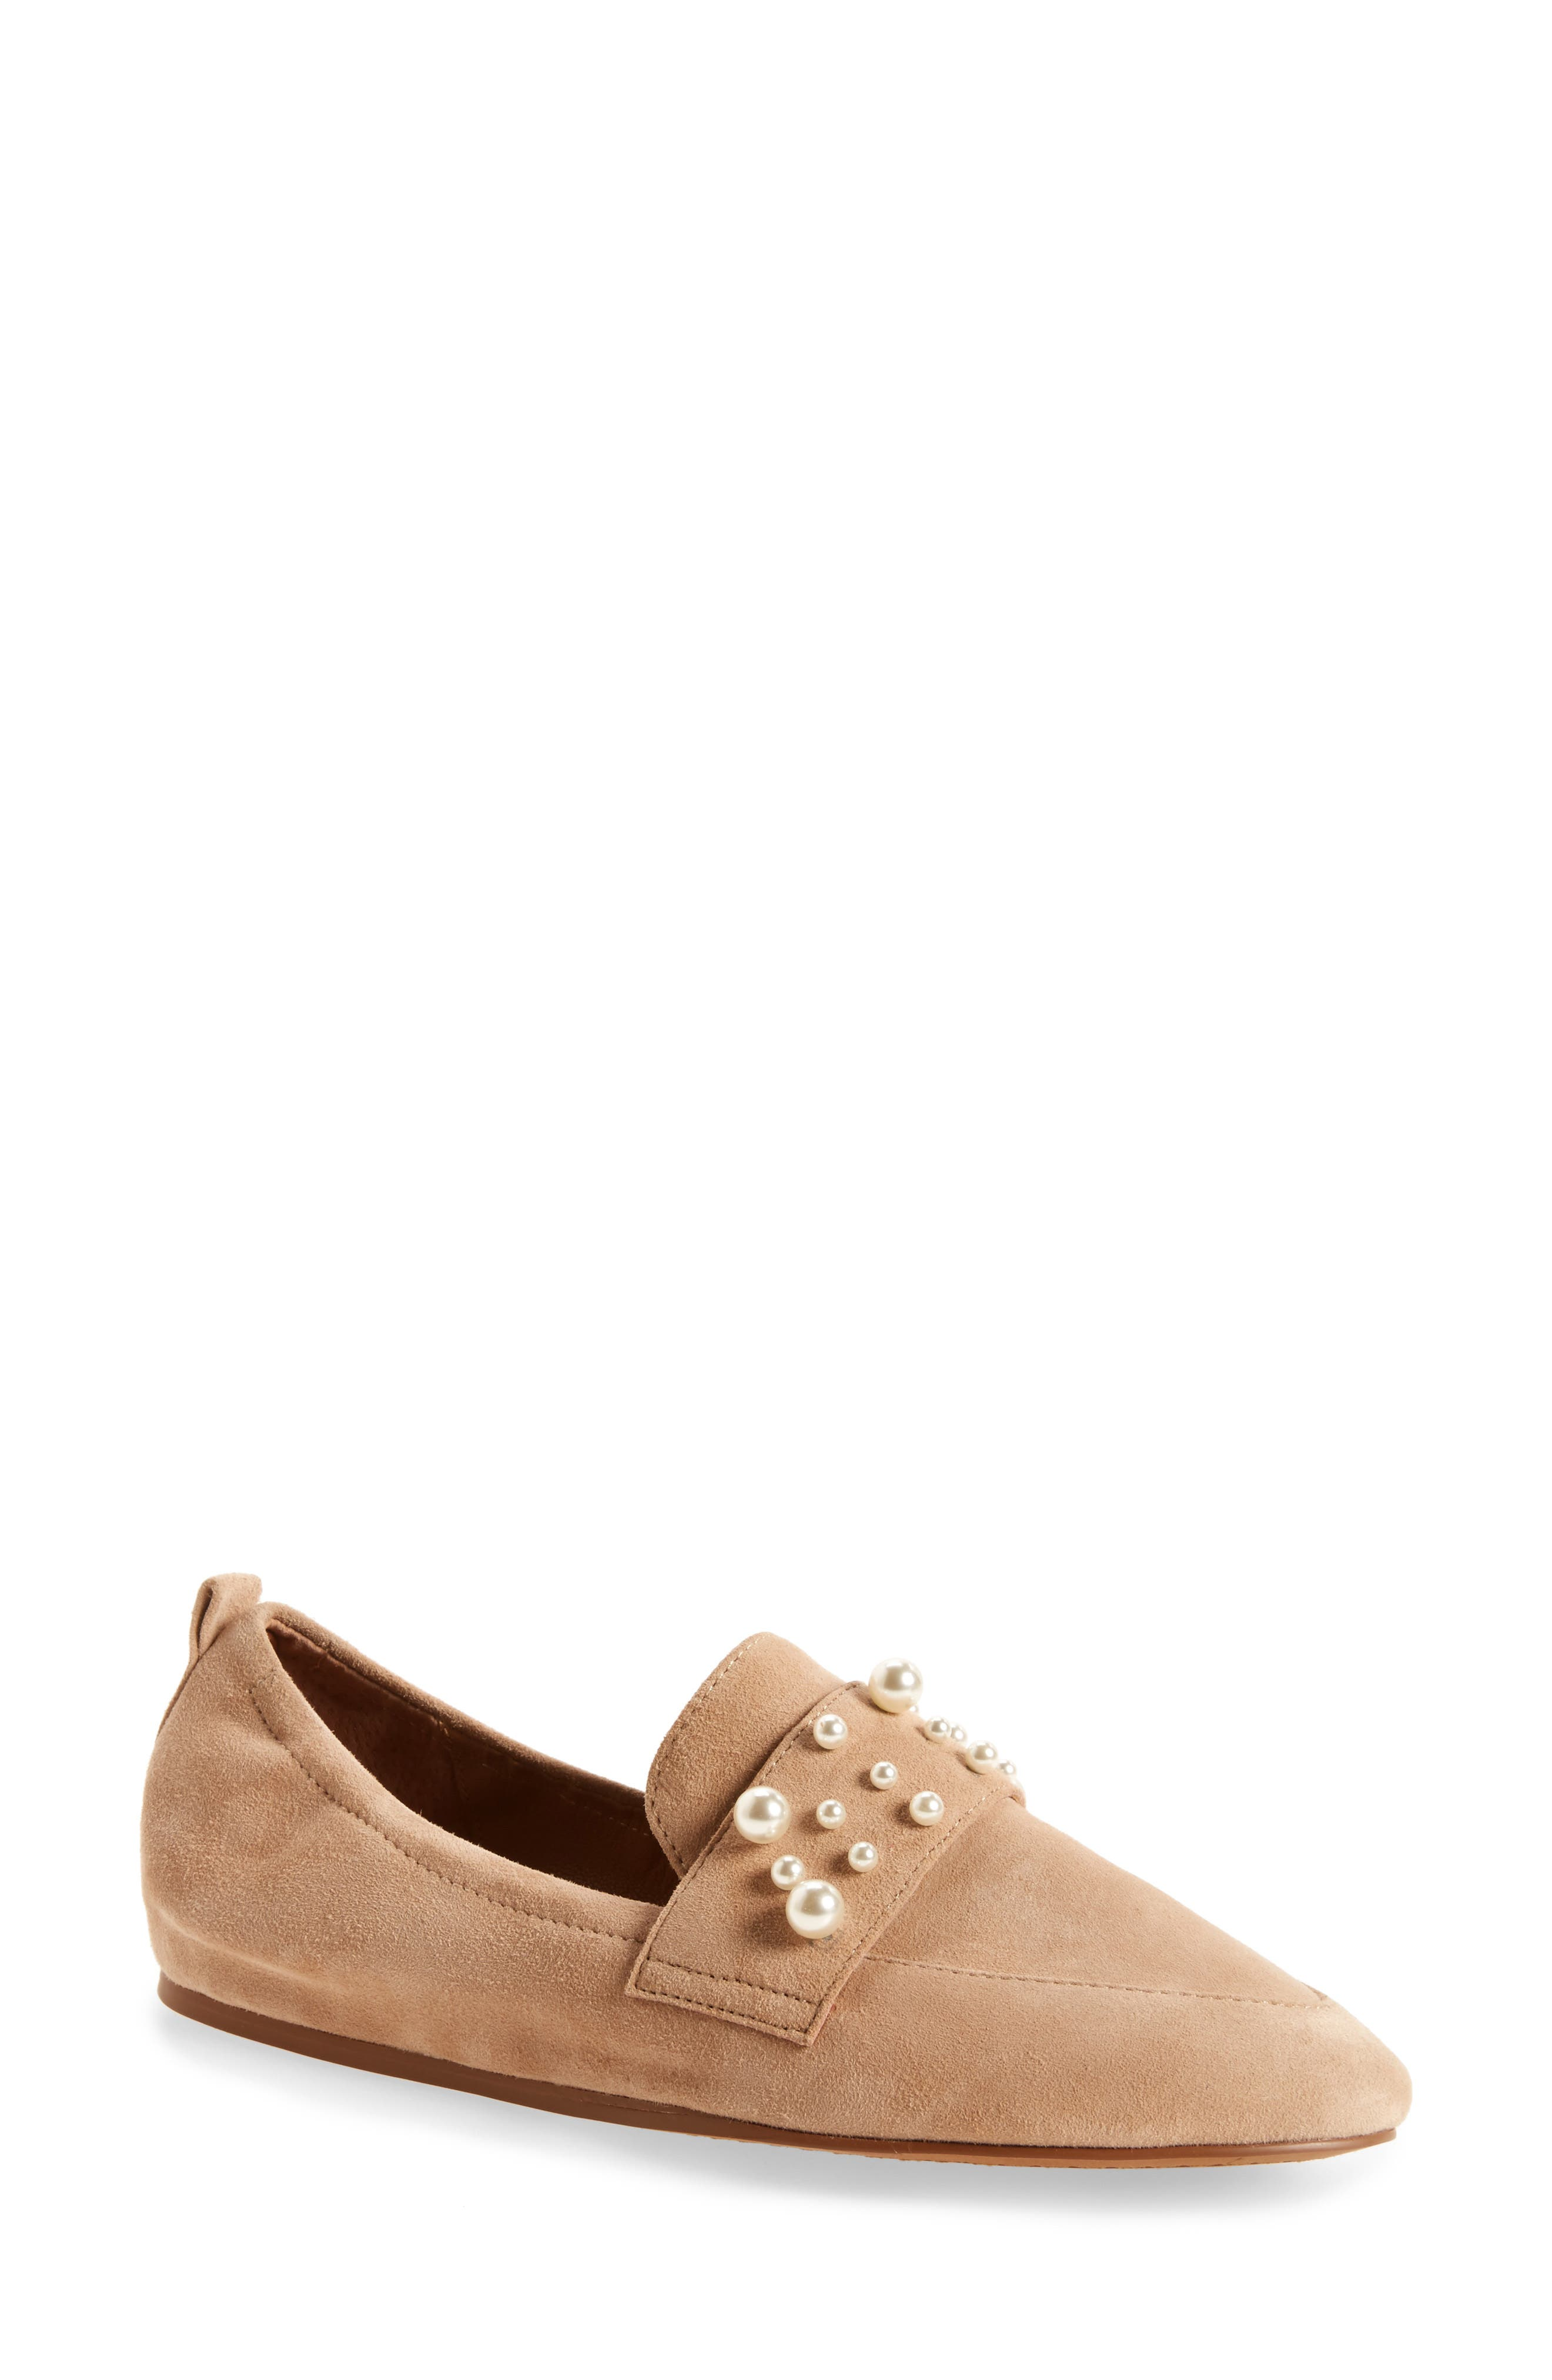 Milly Loafer,                             Main thumbnail 3, color,